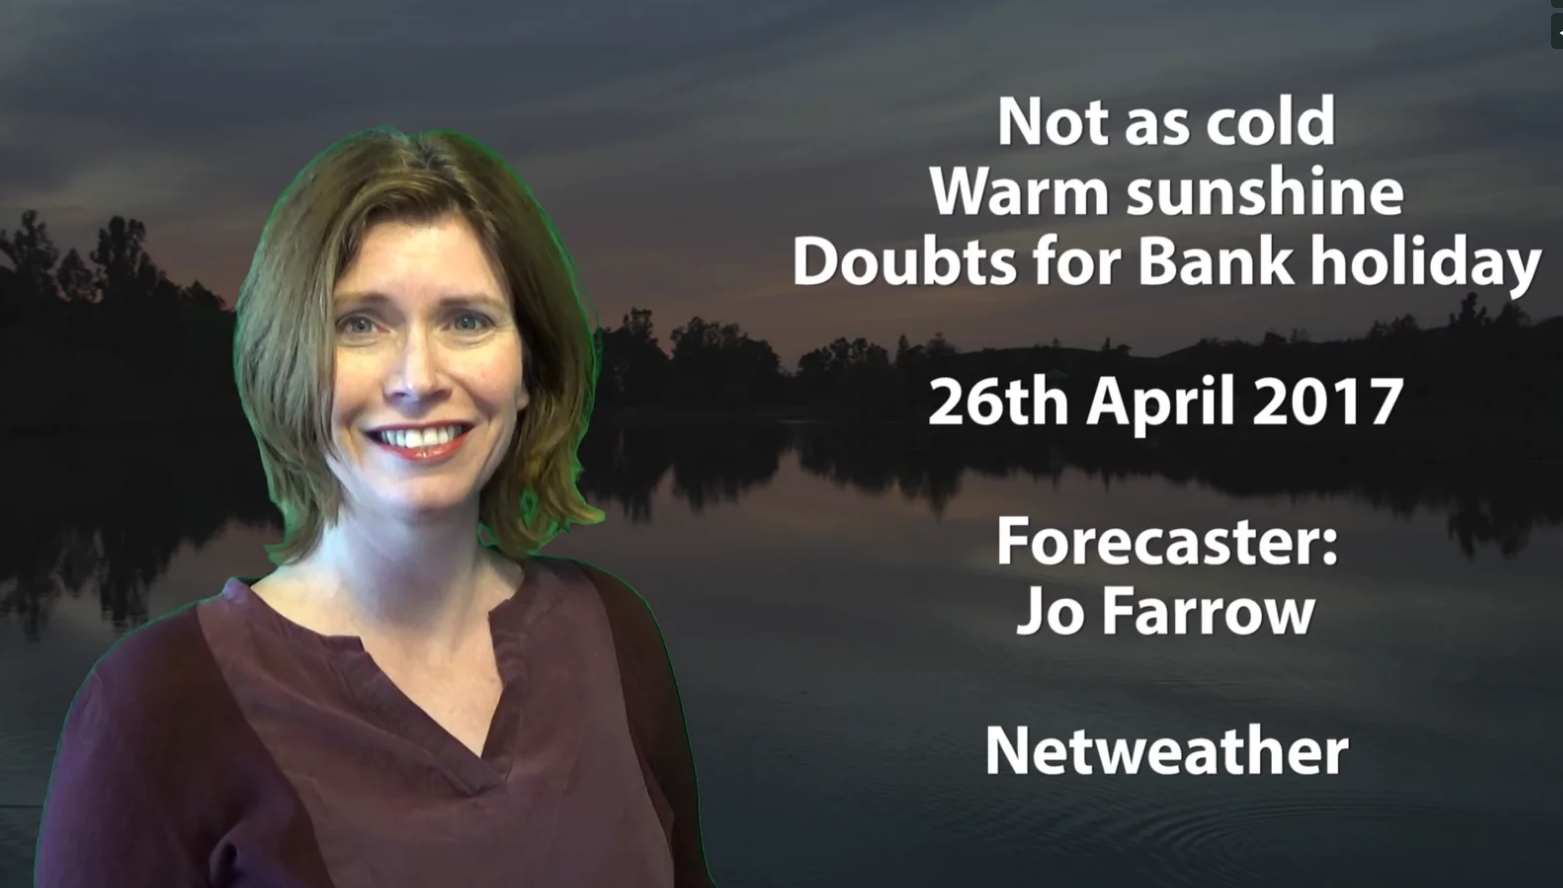 Jo Farrow: Turning warmer, but bank holiday doubts